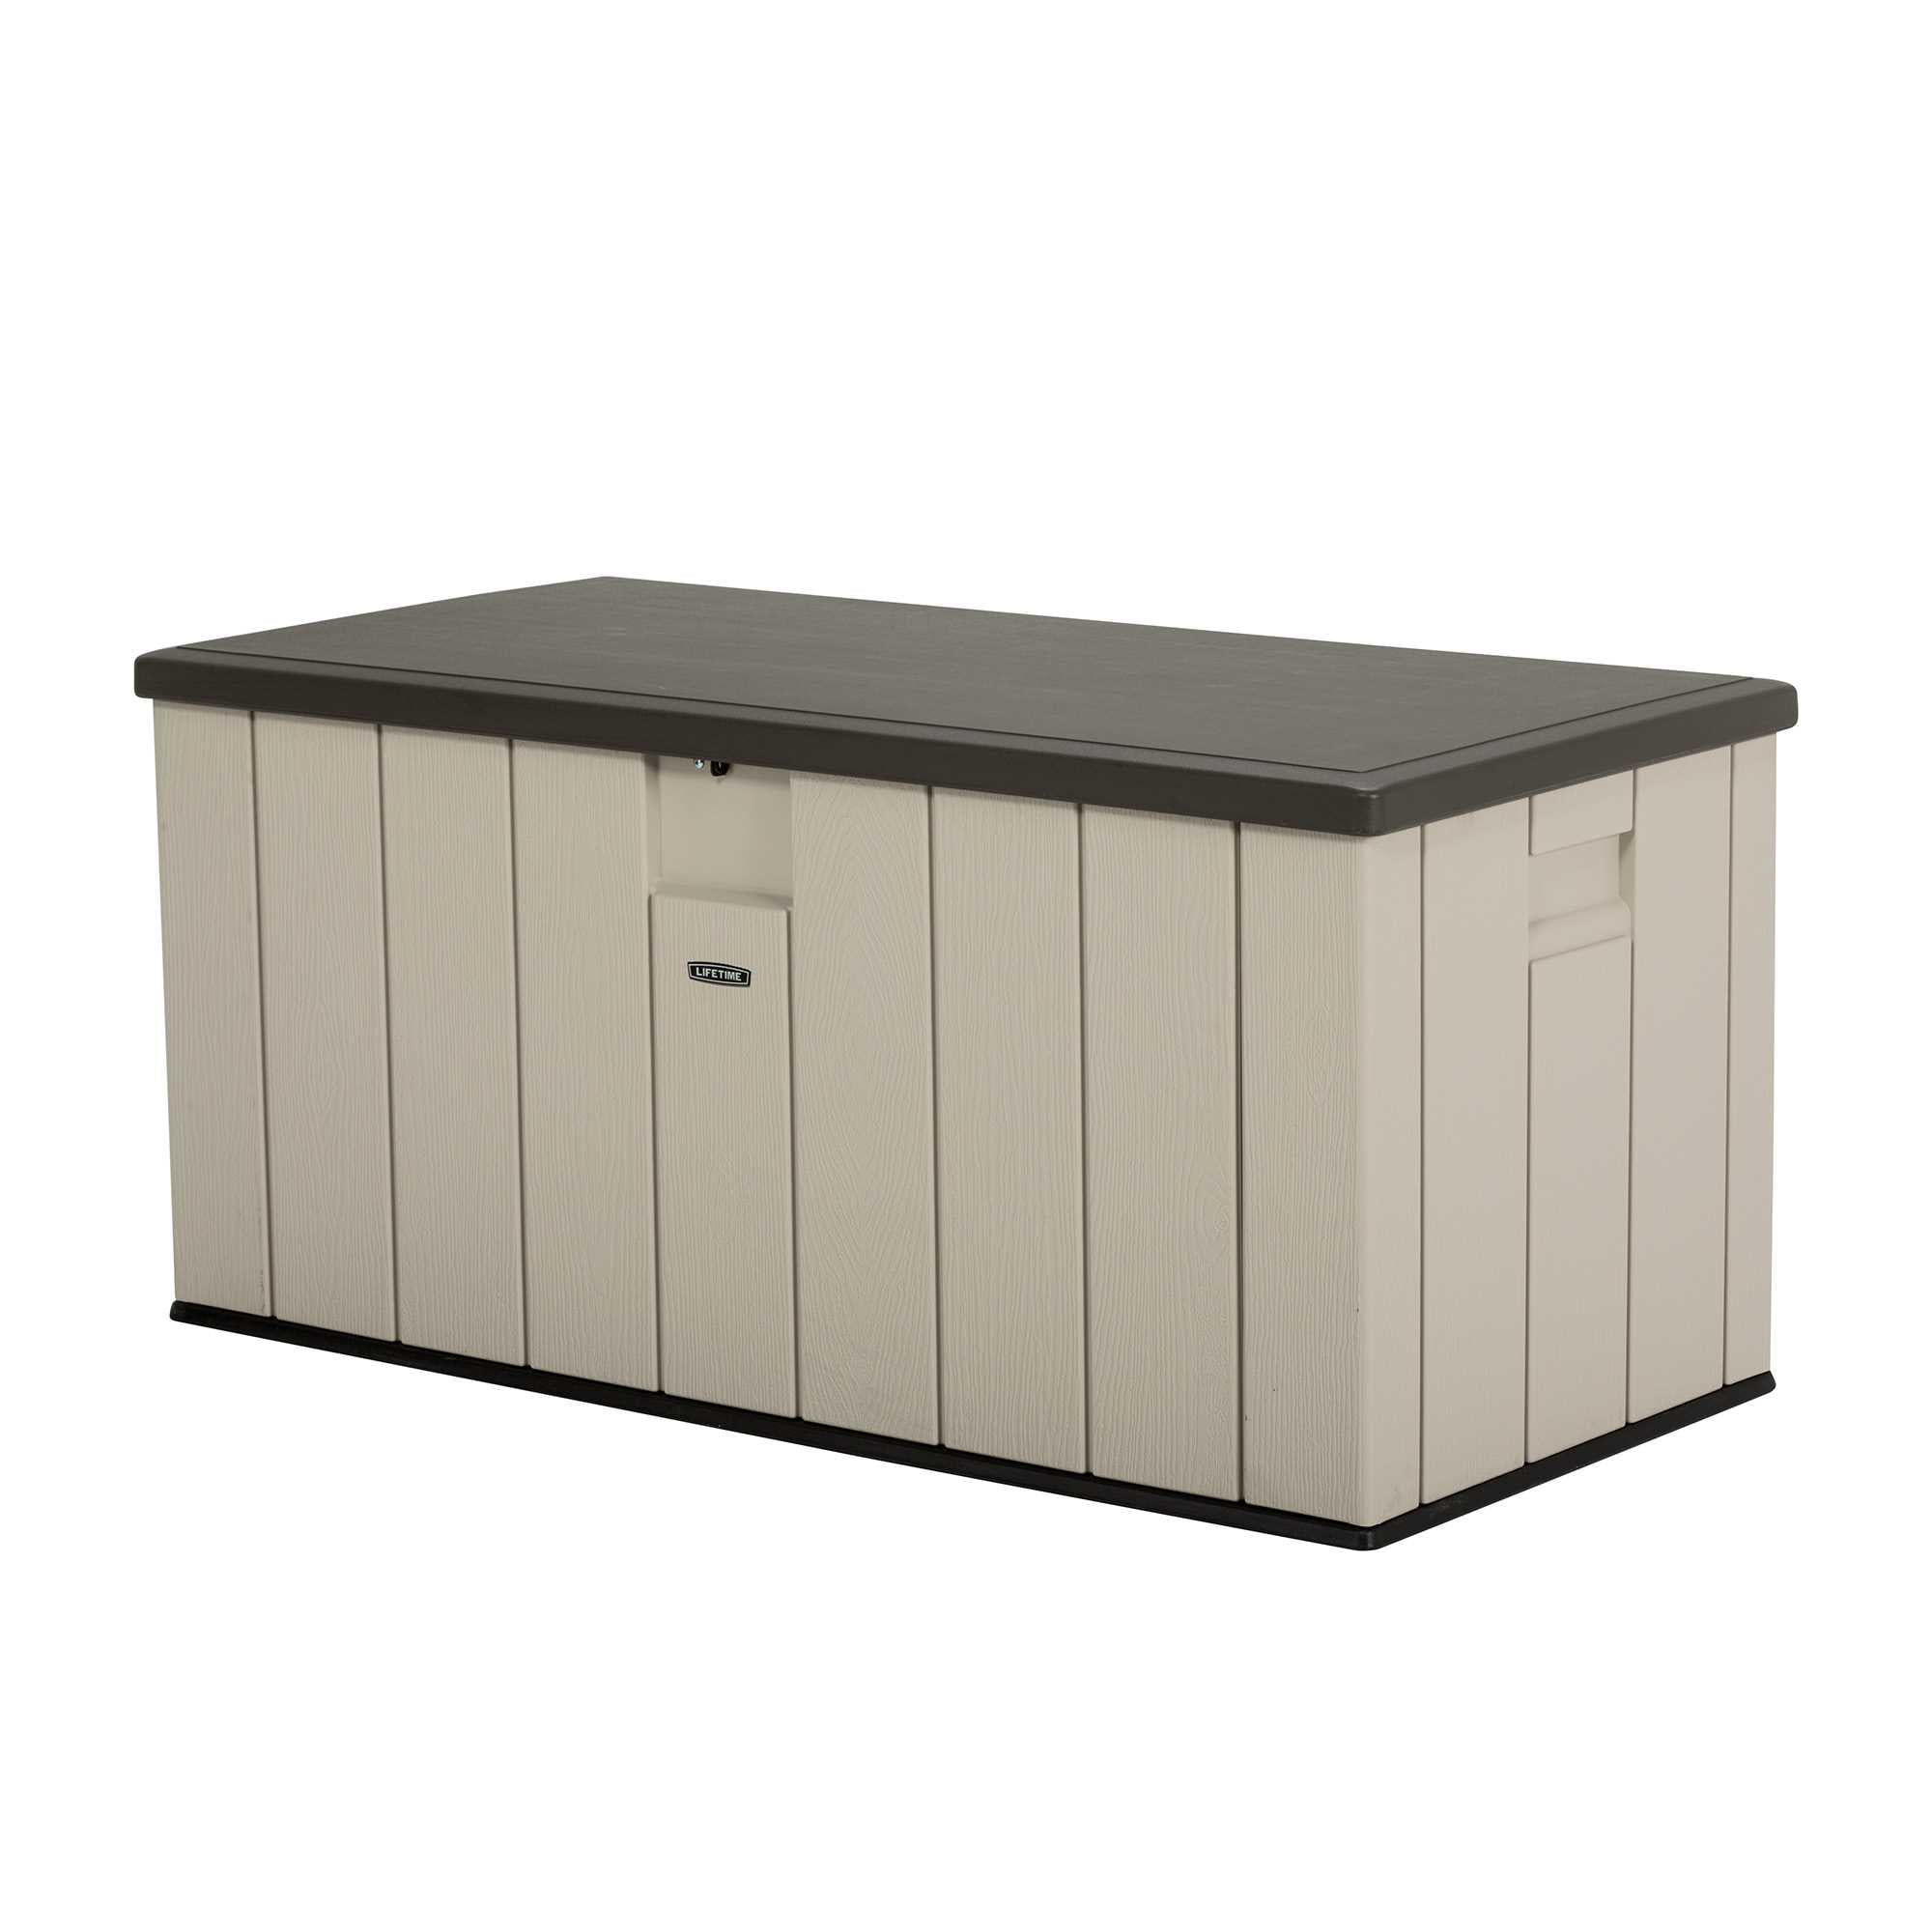 Lifetime Heavy-Duty Outdoor Storage Deck Box (150 Gallon), 60254 by Lifetime Products